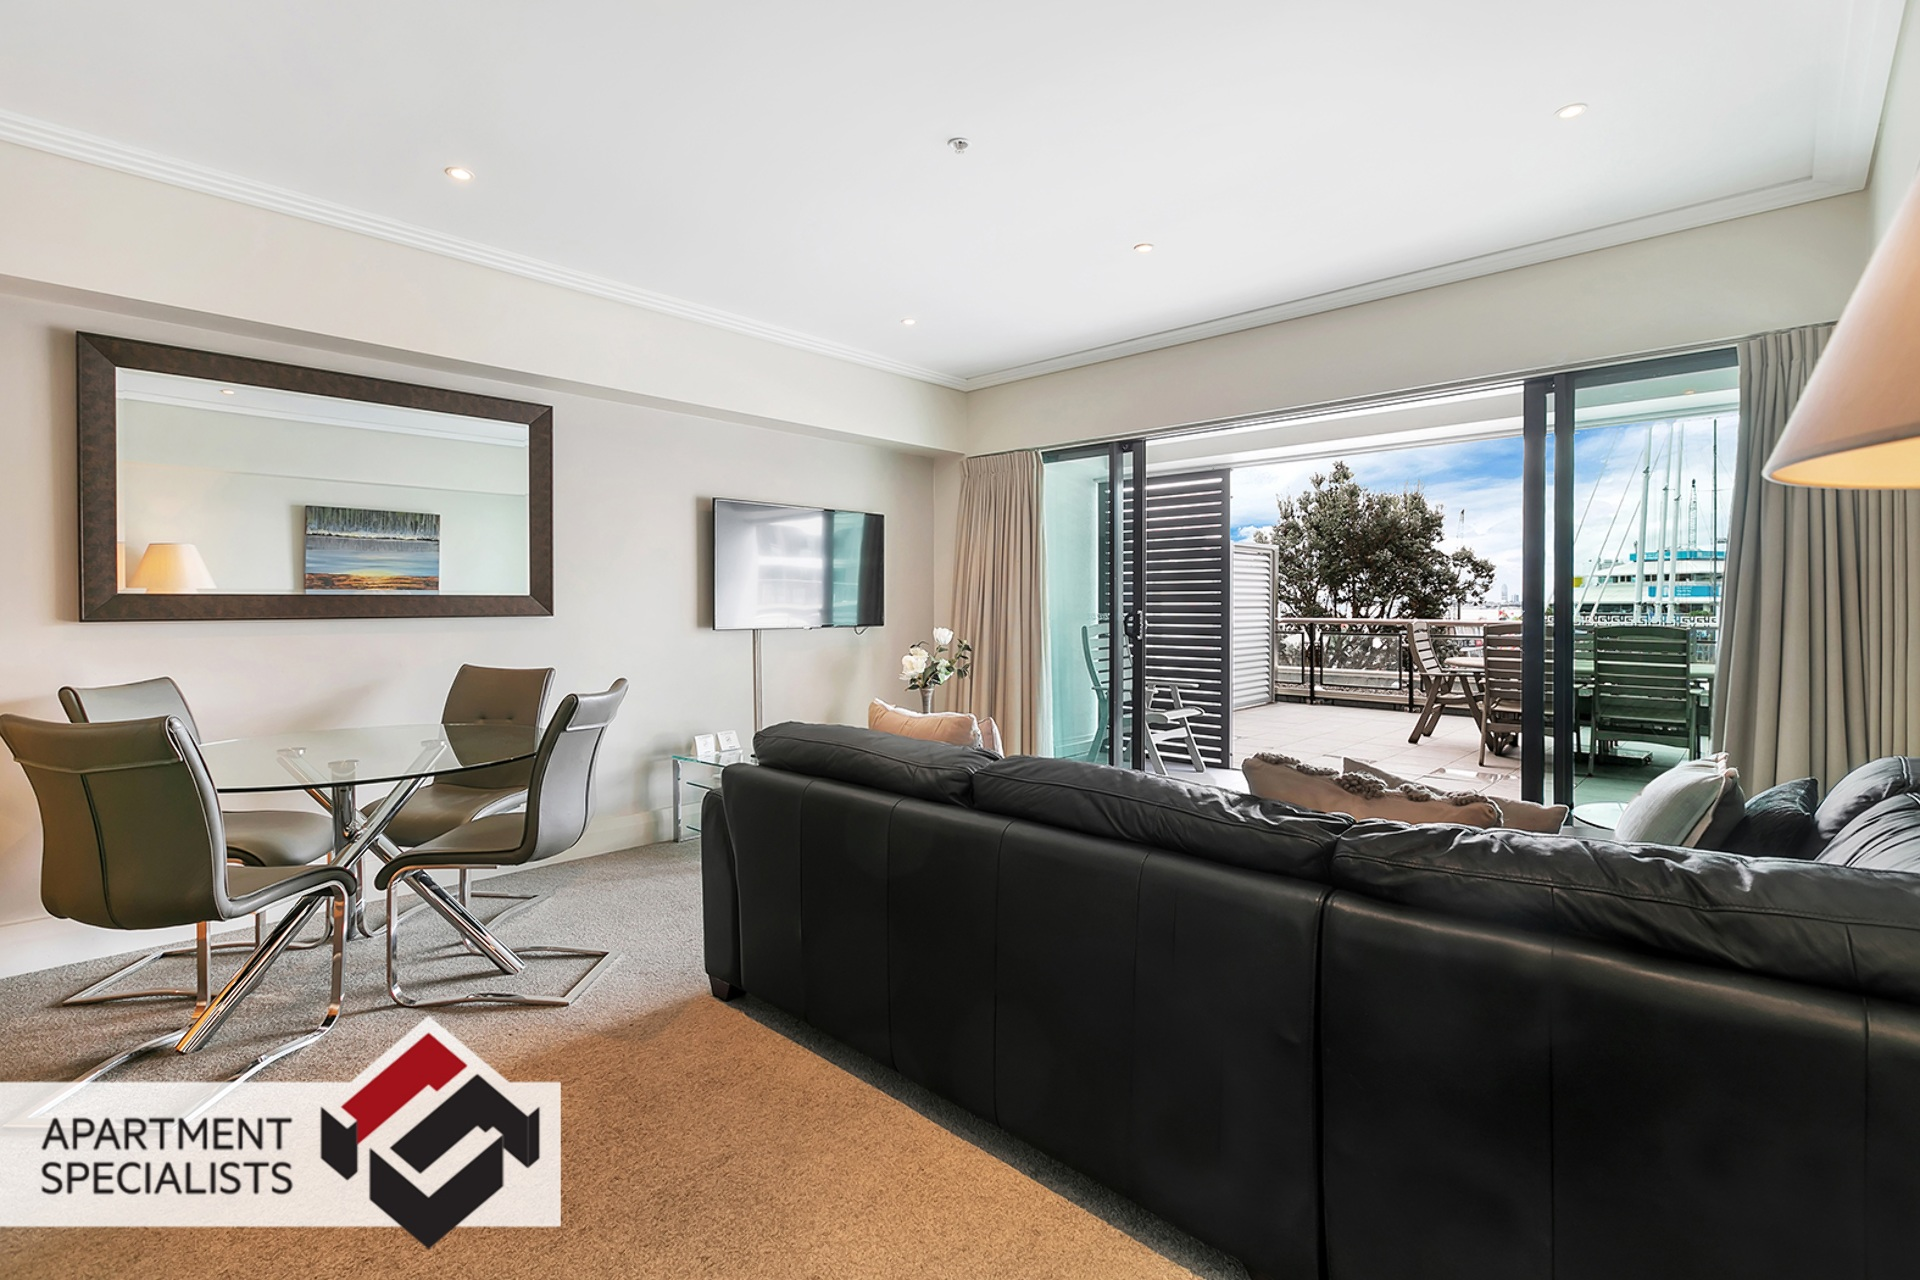 4 | 99 Customs Street West, City Centre | Apartment Specialists